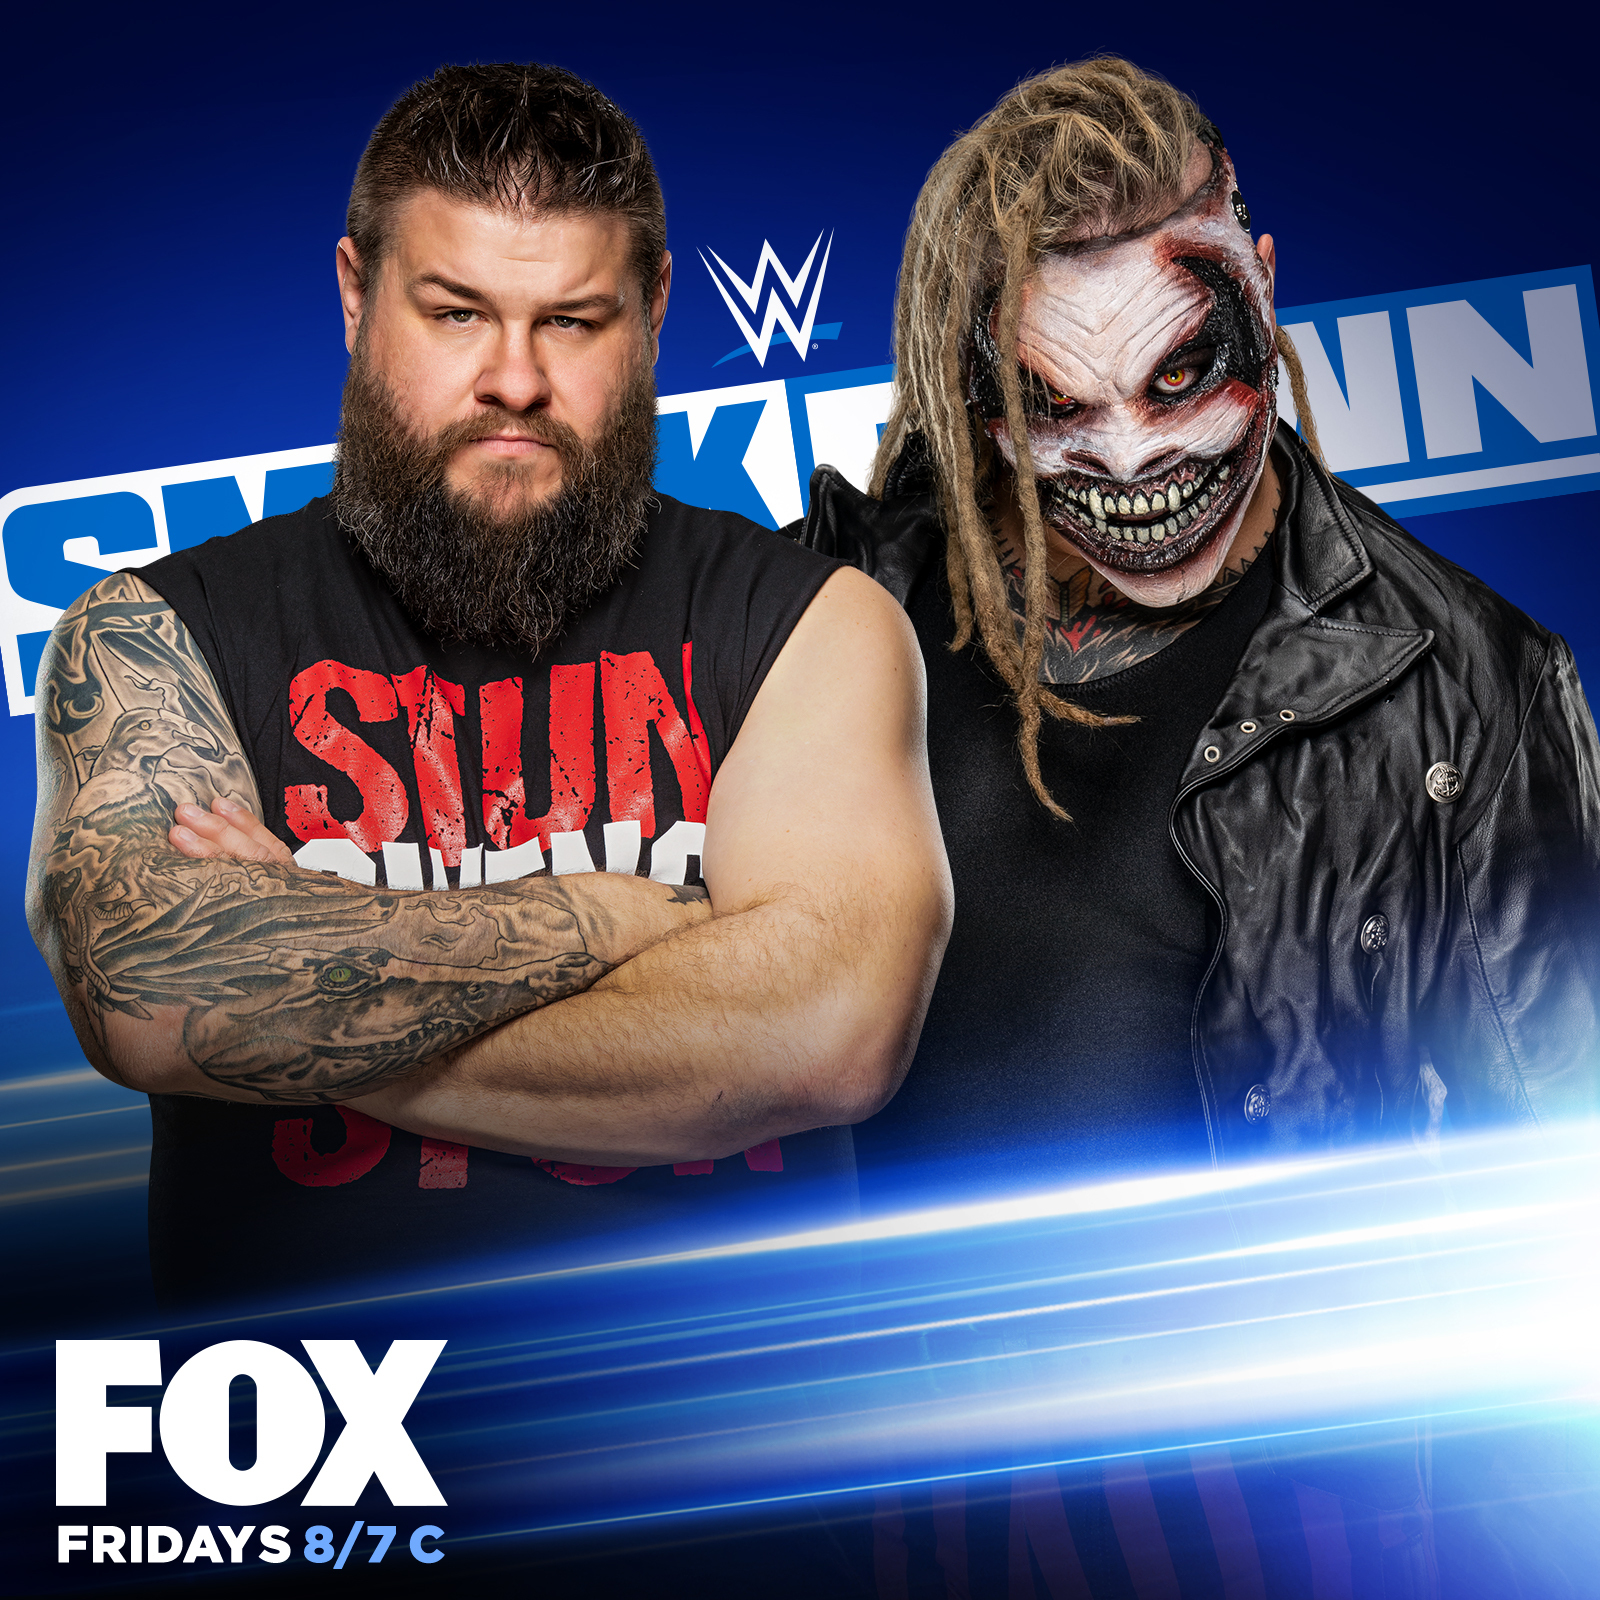 WWE Draft 2020: The Fiend, Title Match And More Set For Smackdown 1